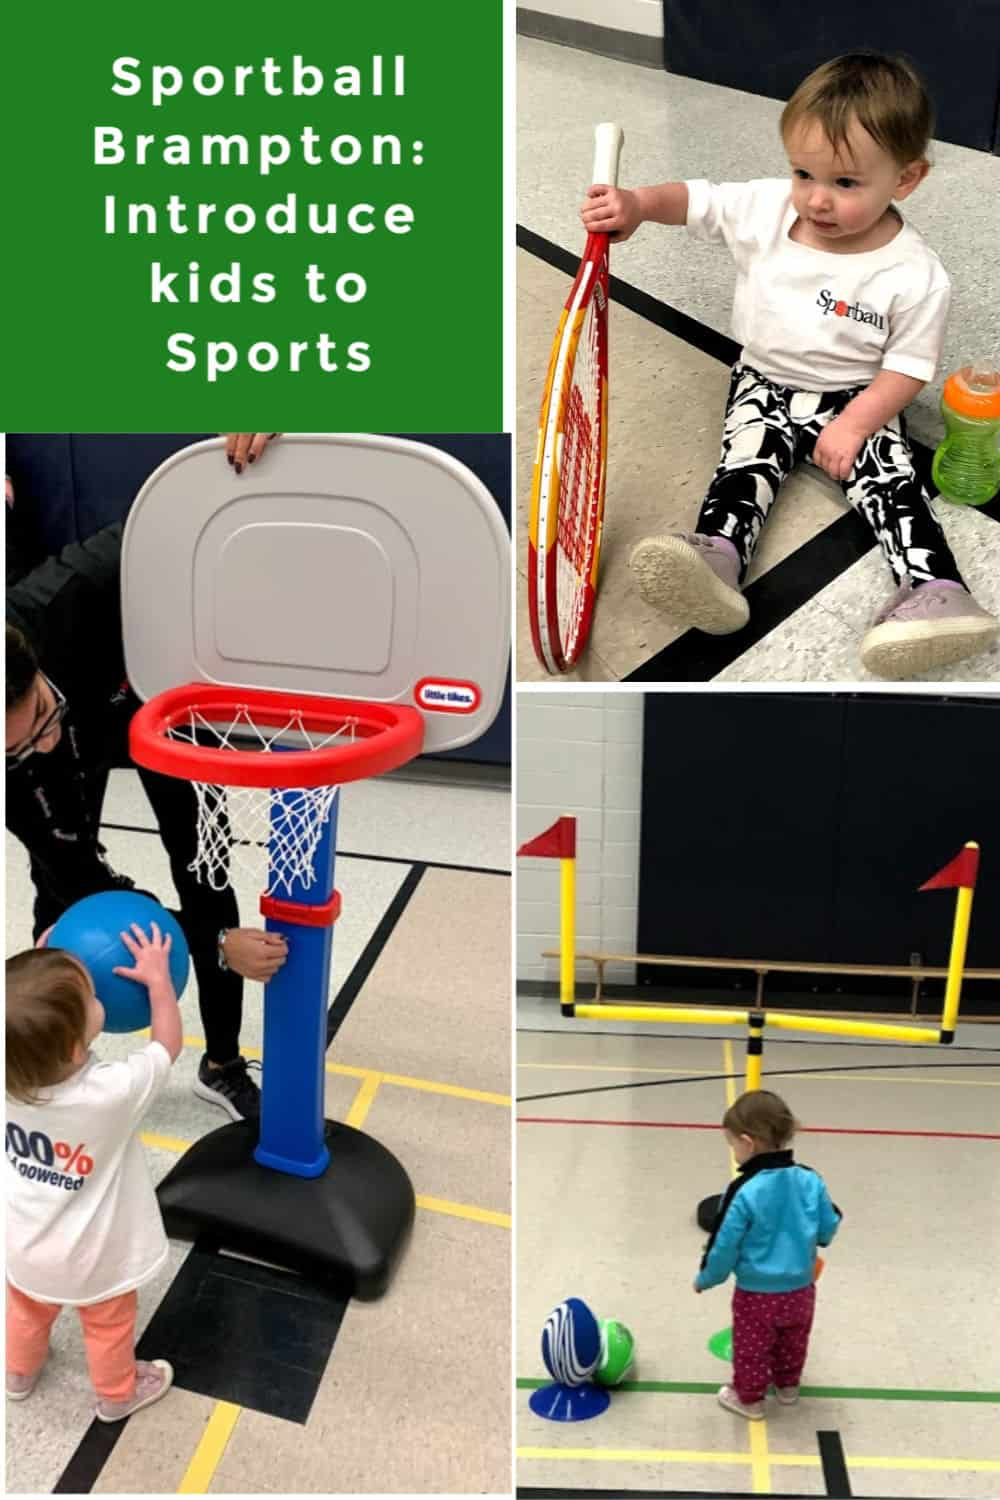 Sportball Brampton: An Introduction to Sports for Kids